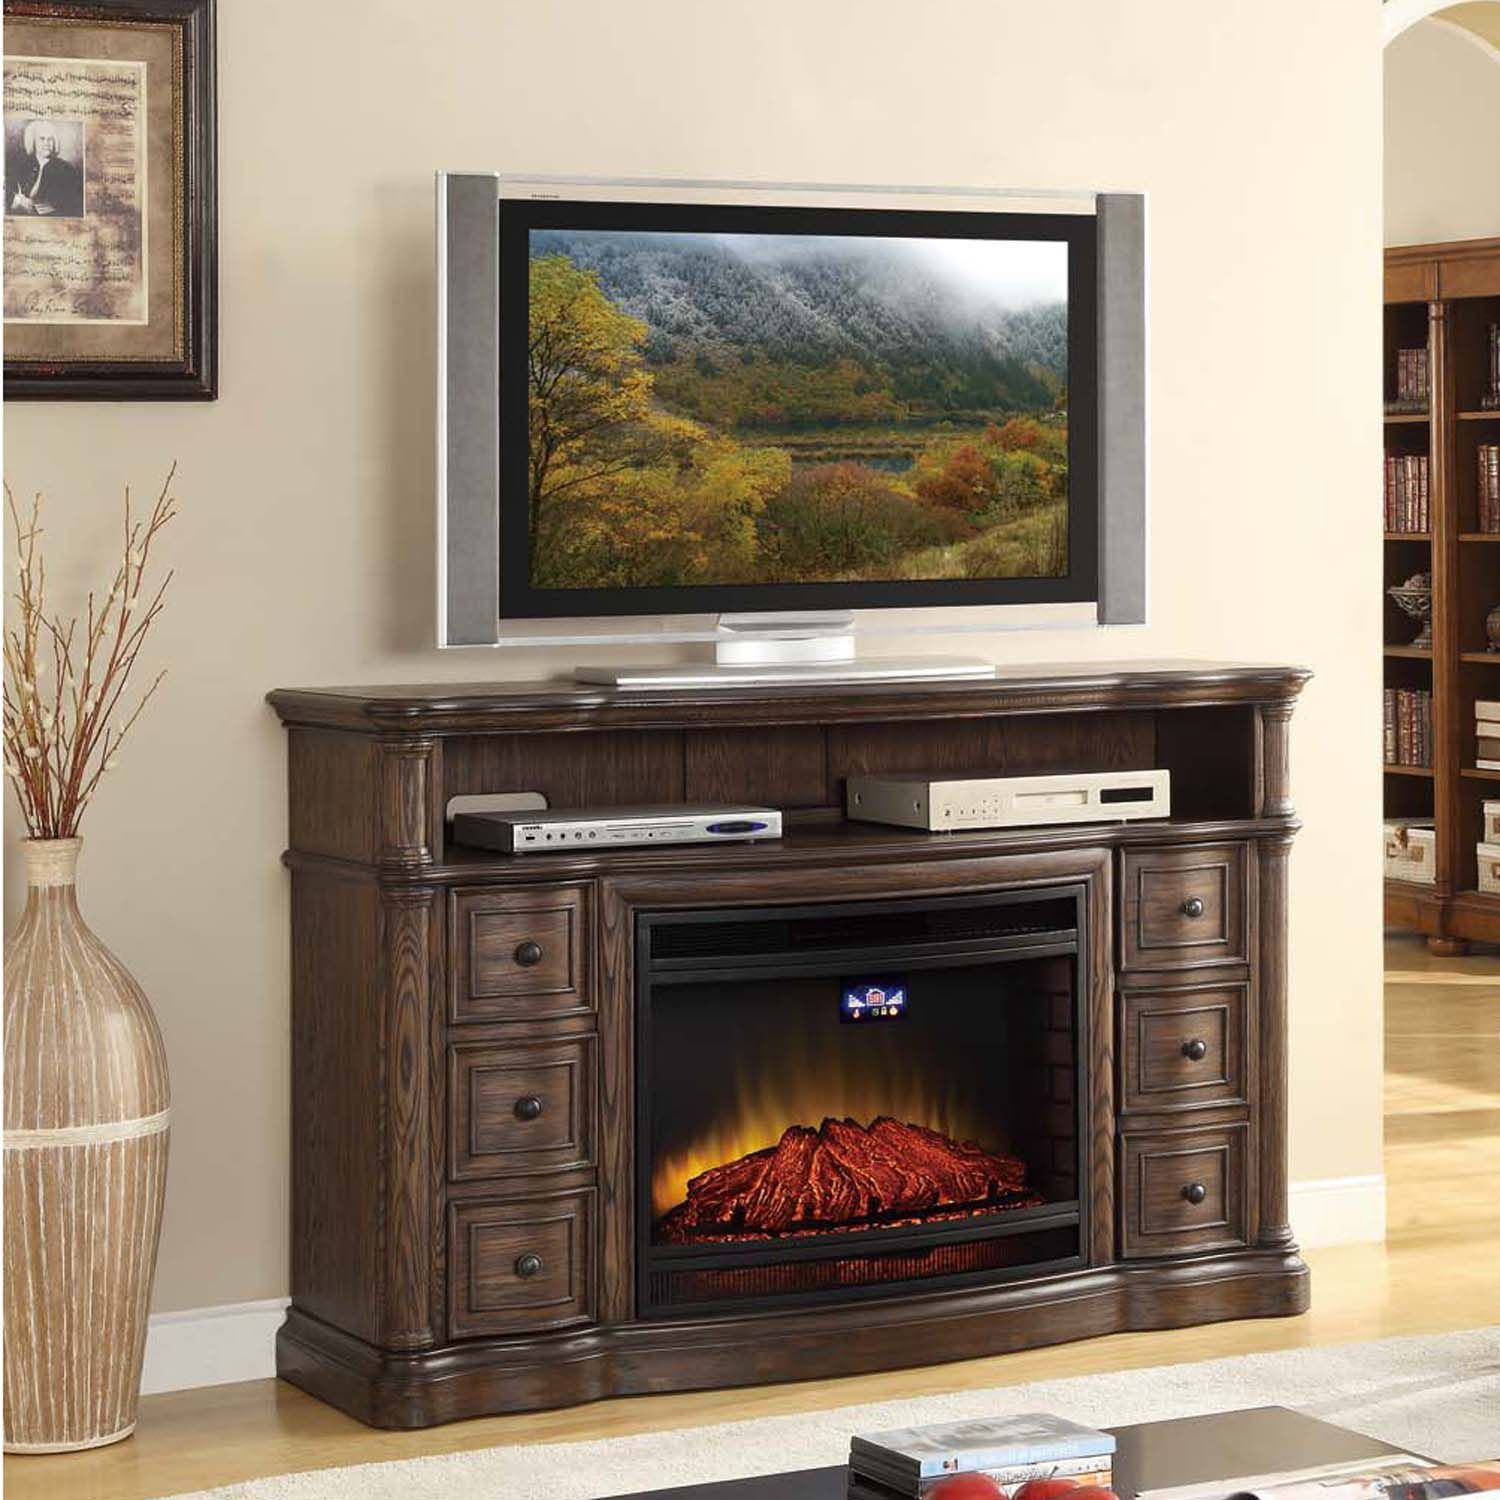 Astounding Looking For A Mantle Surround To Store Hide Components Download Free Architecture Designs Scobabritishbridgeorg